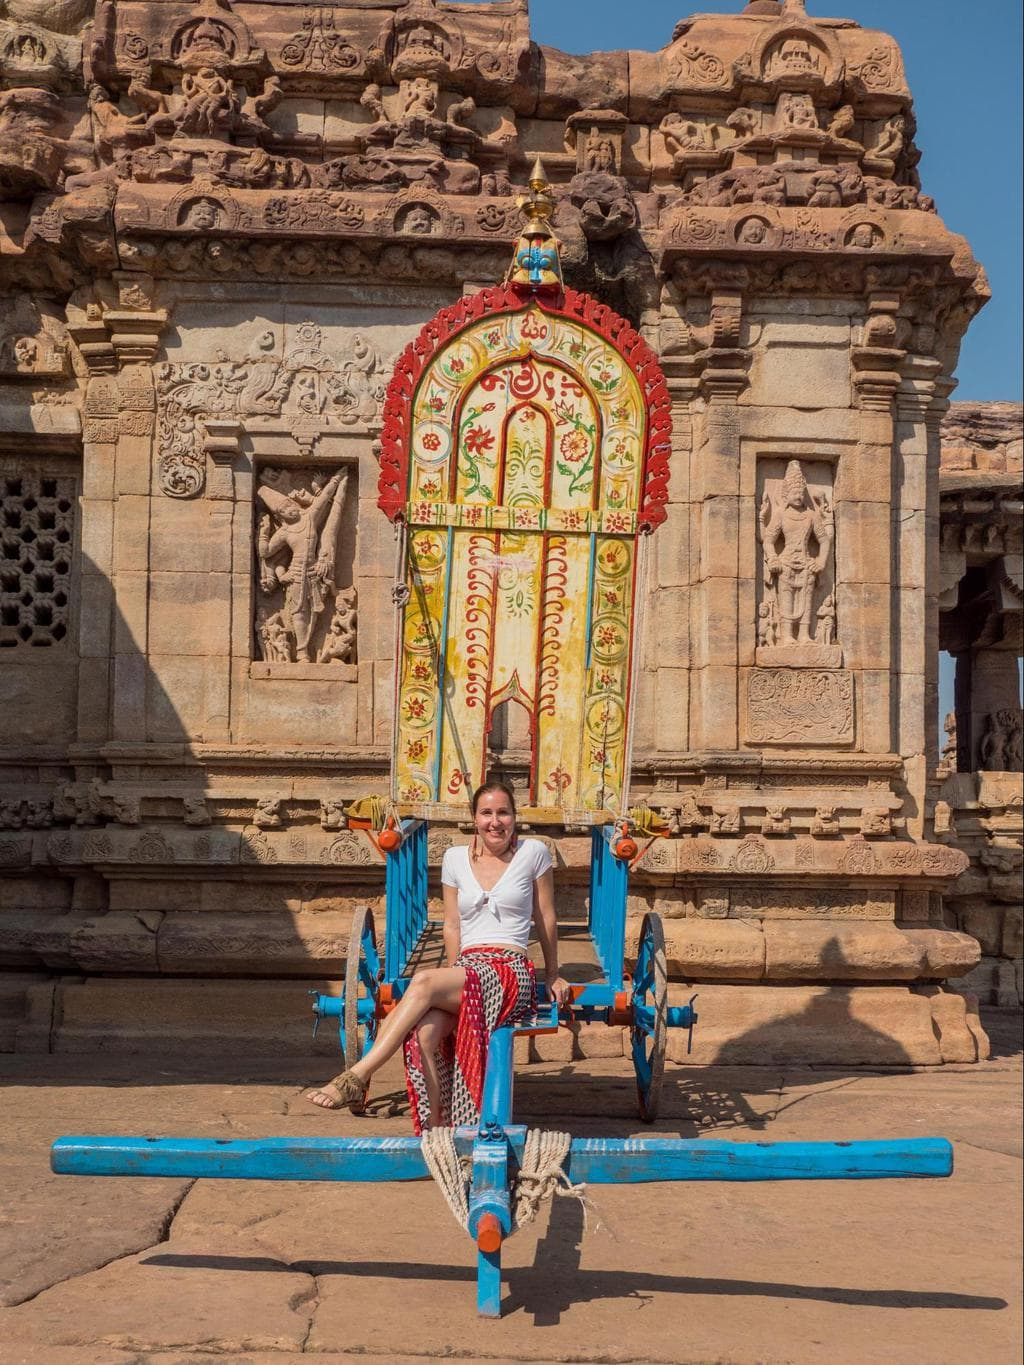 Farmer's cart in front of Virupaksha temple in Pattadakal